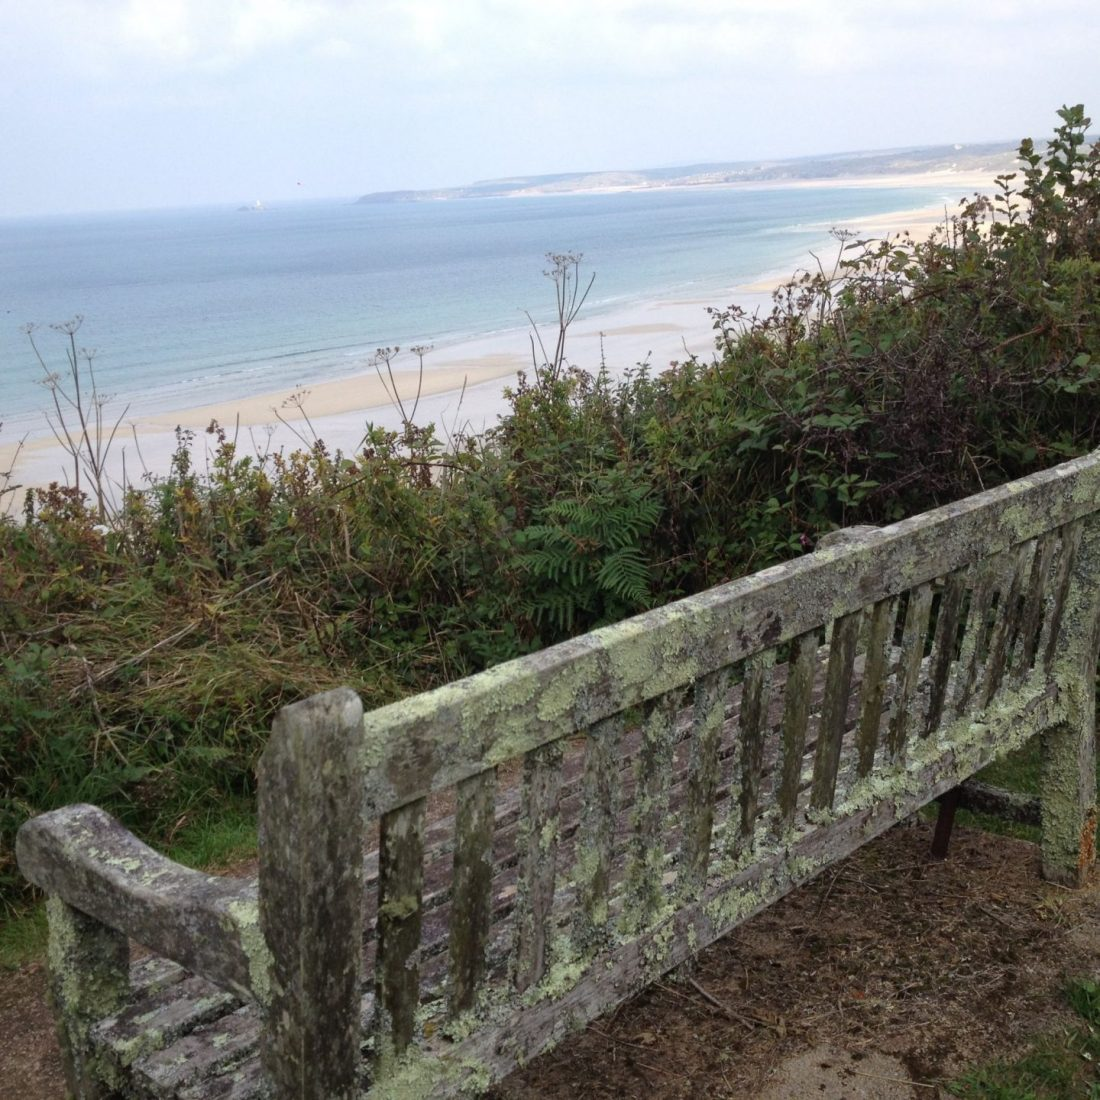 Bench with a view of Porthkidney Beach, Cornwall